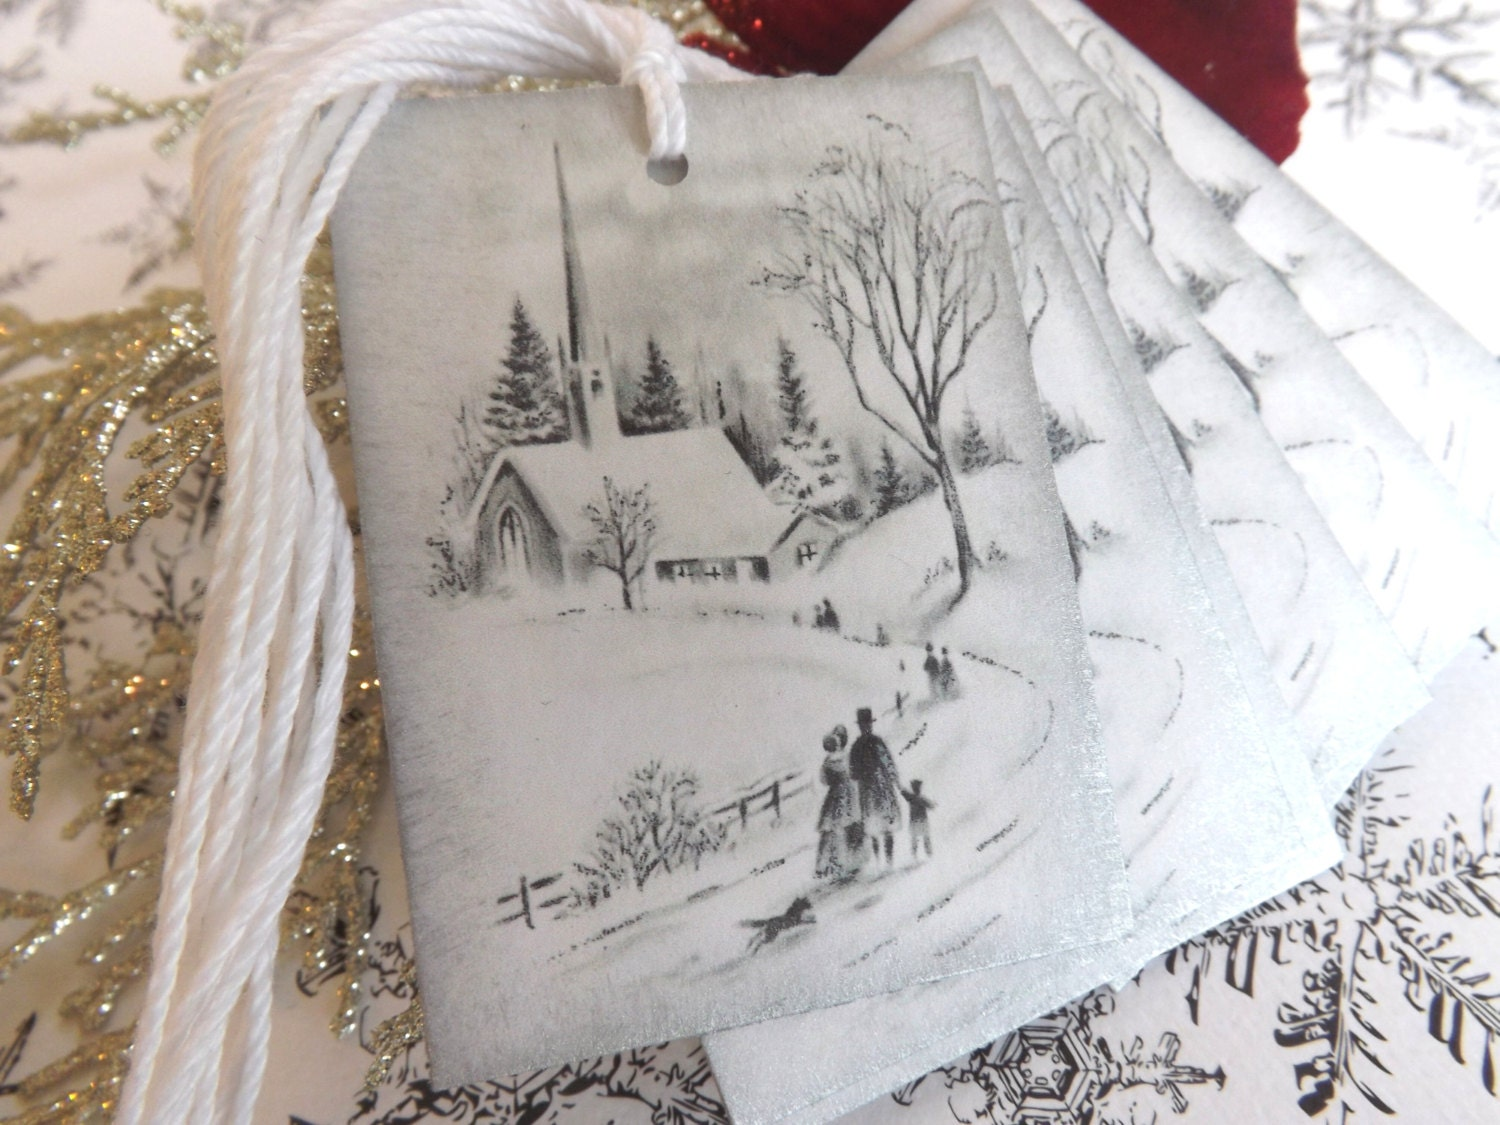 White and Silver Snowy Church Scene Christmas Gift Tags // Vintage Christmas Image // Set of 6